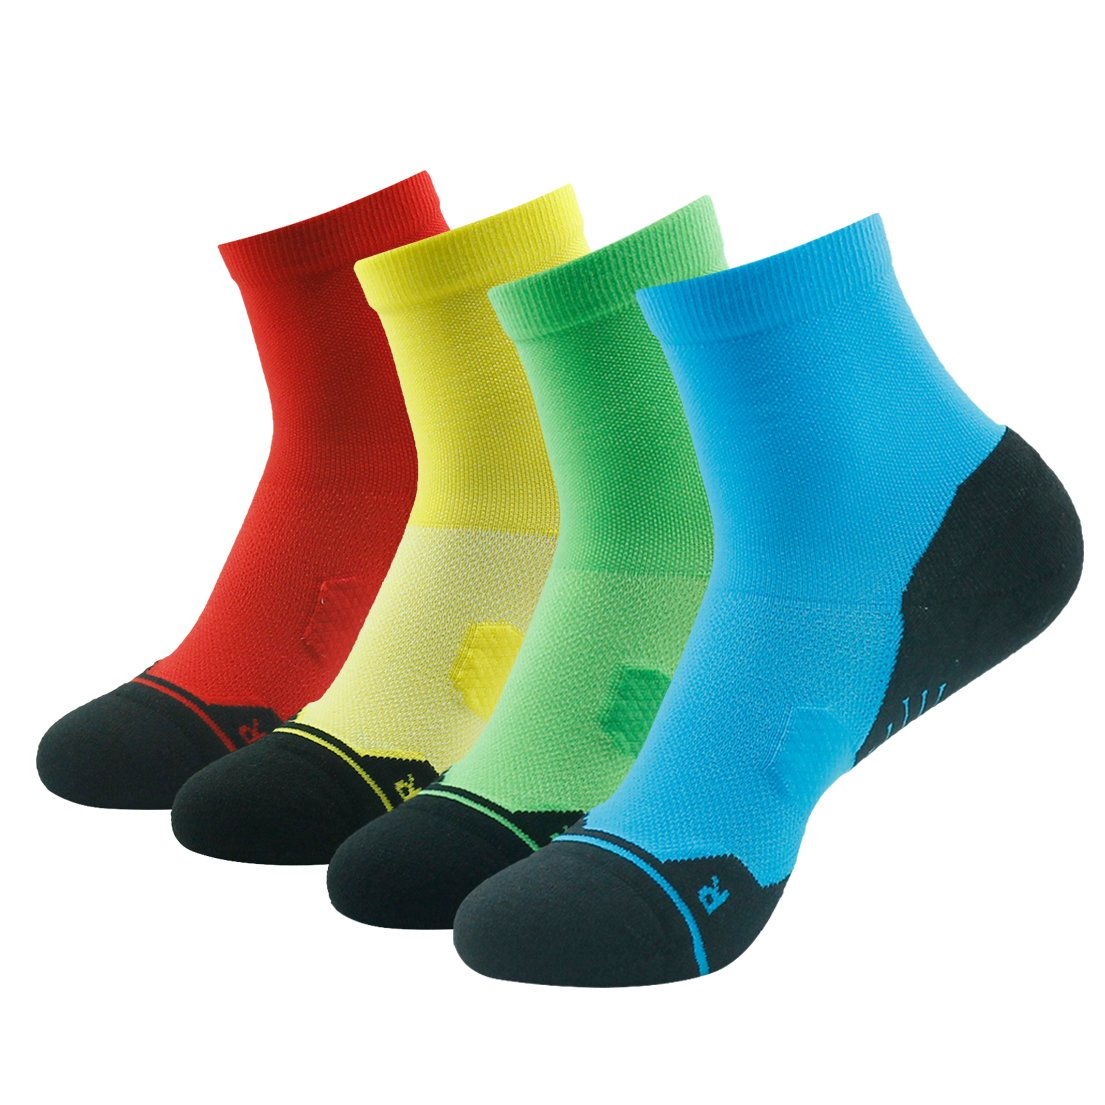 4 Pair bluee&green&yellow&red Running Socks Support, HUSO Men Women High Performance Arch Compression Cushioned Quarter Socks 1,2,3,4,6 Pairs